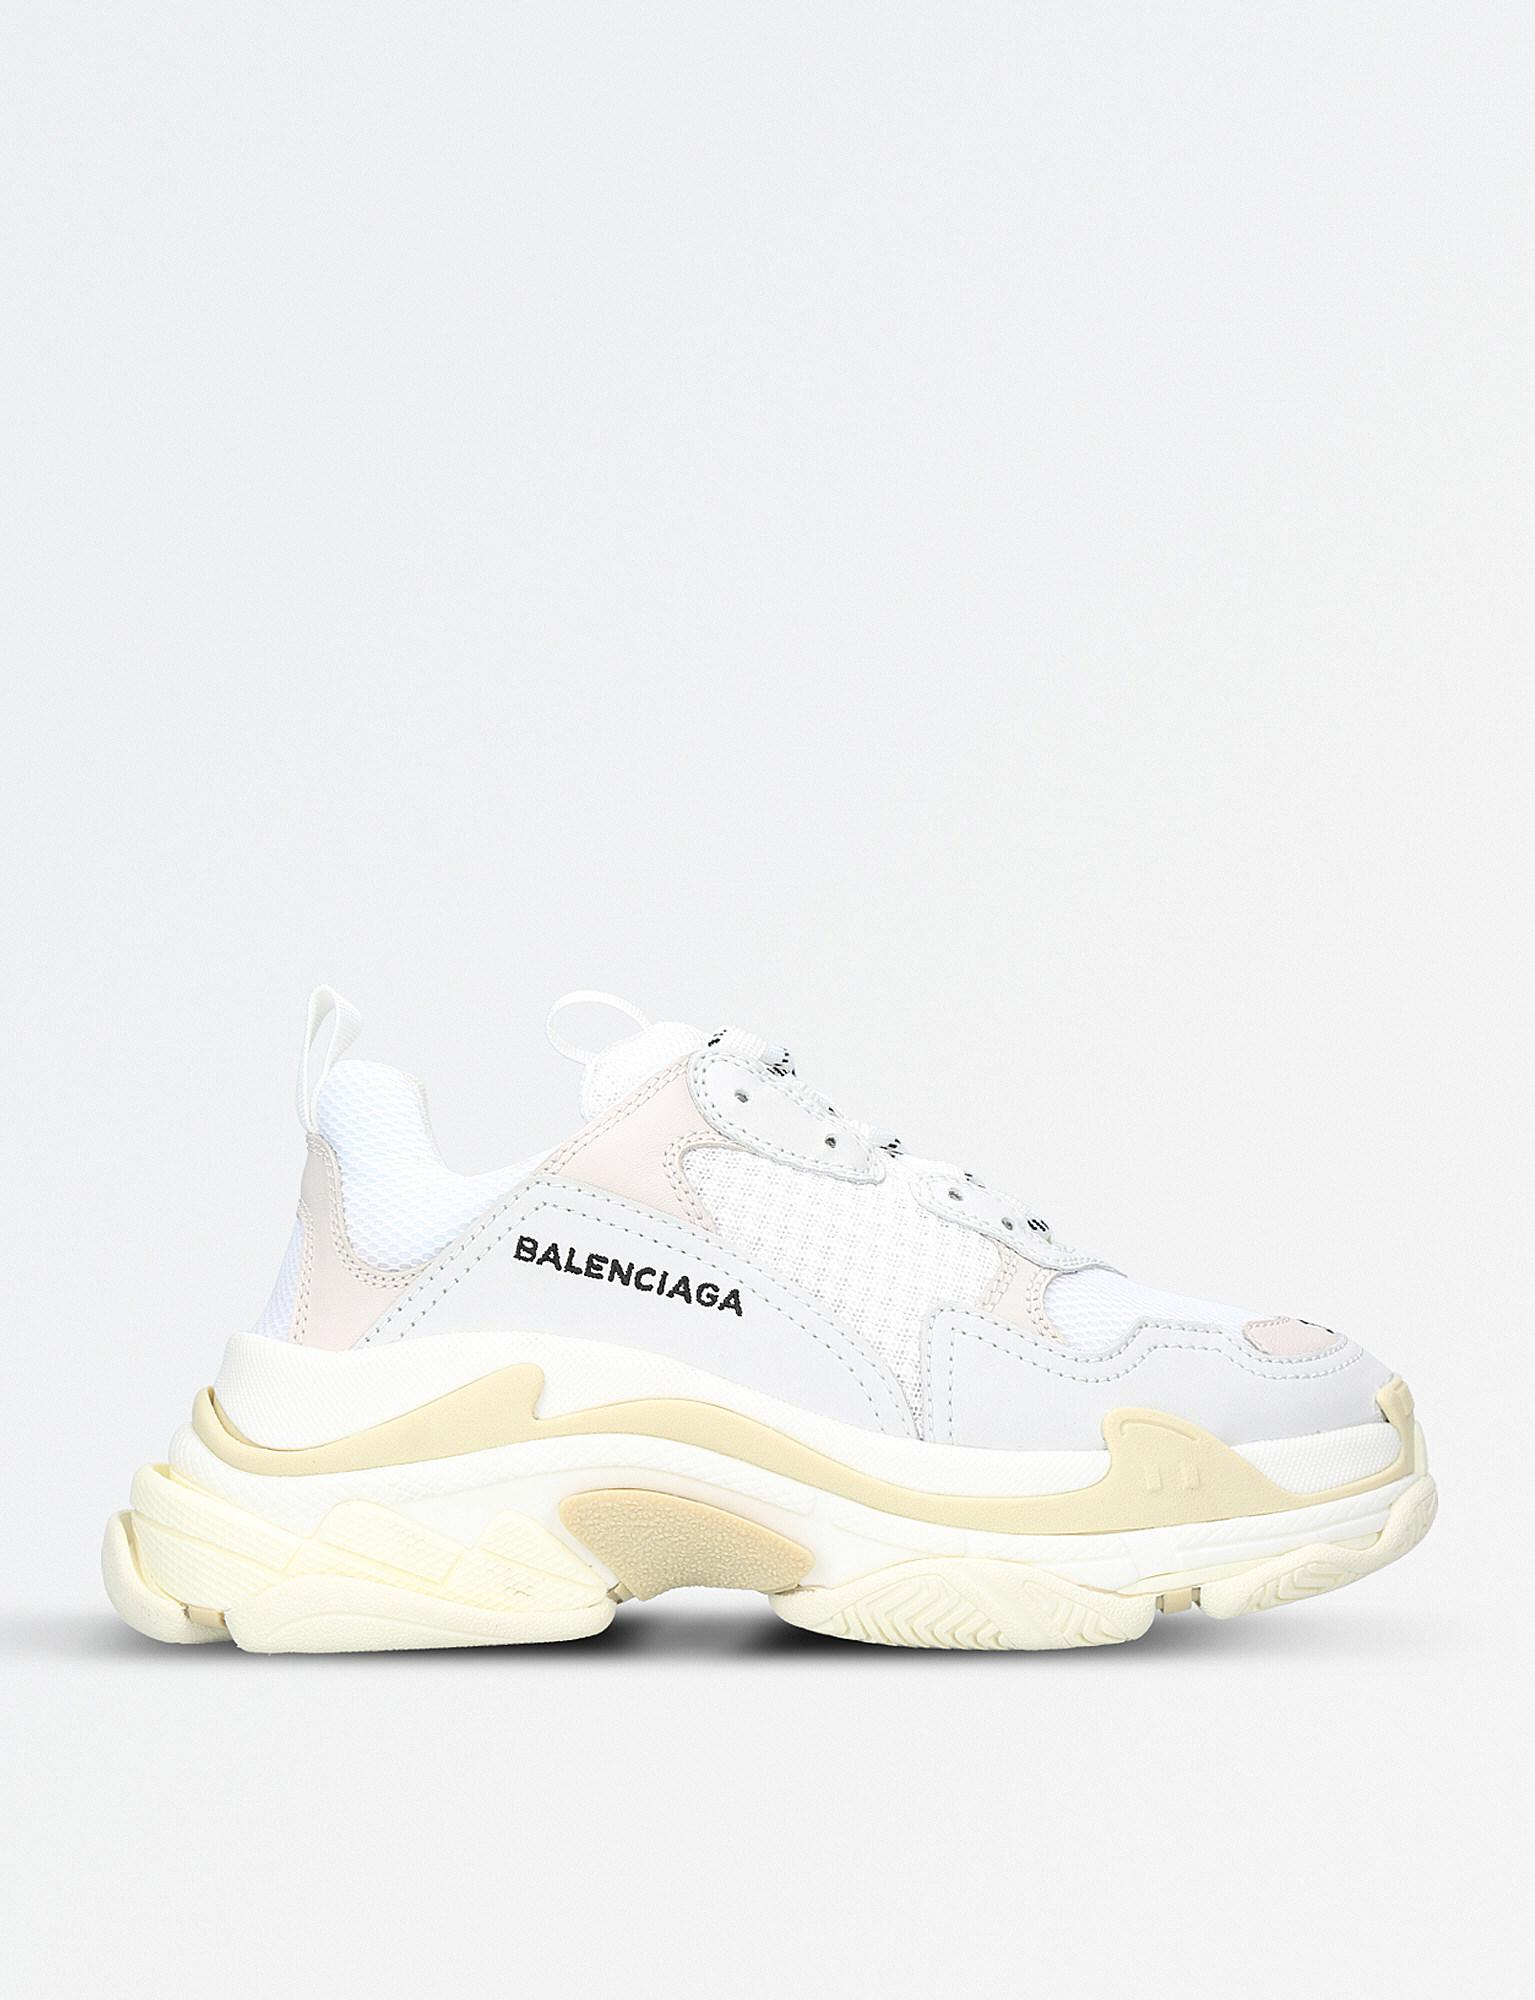 6267f94a9771 Lyst - Balenciaga Triple S Trainer in White